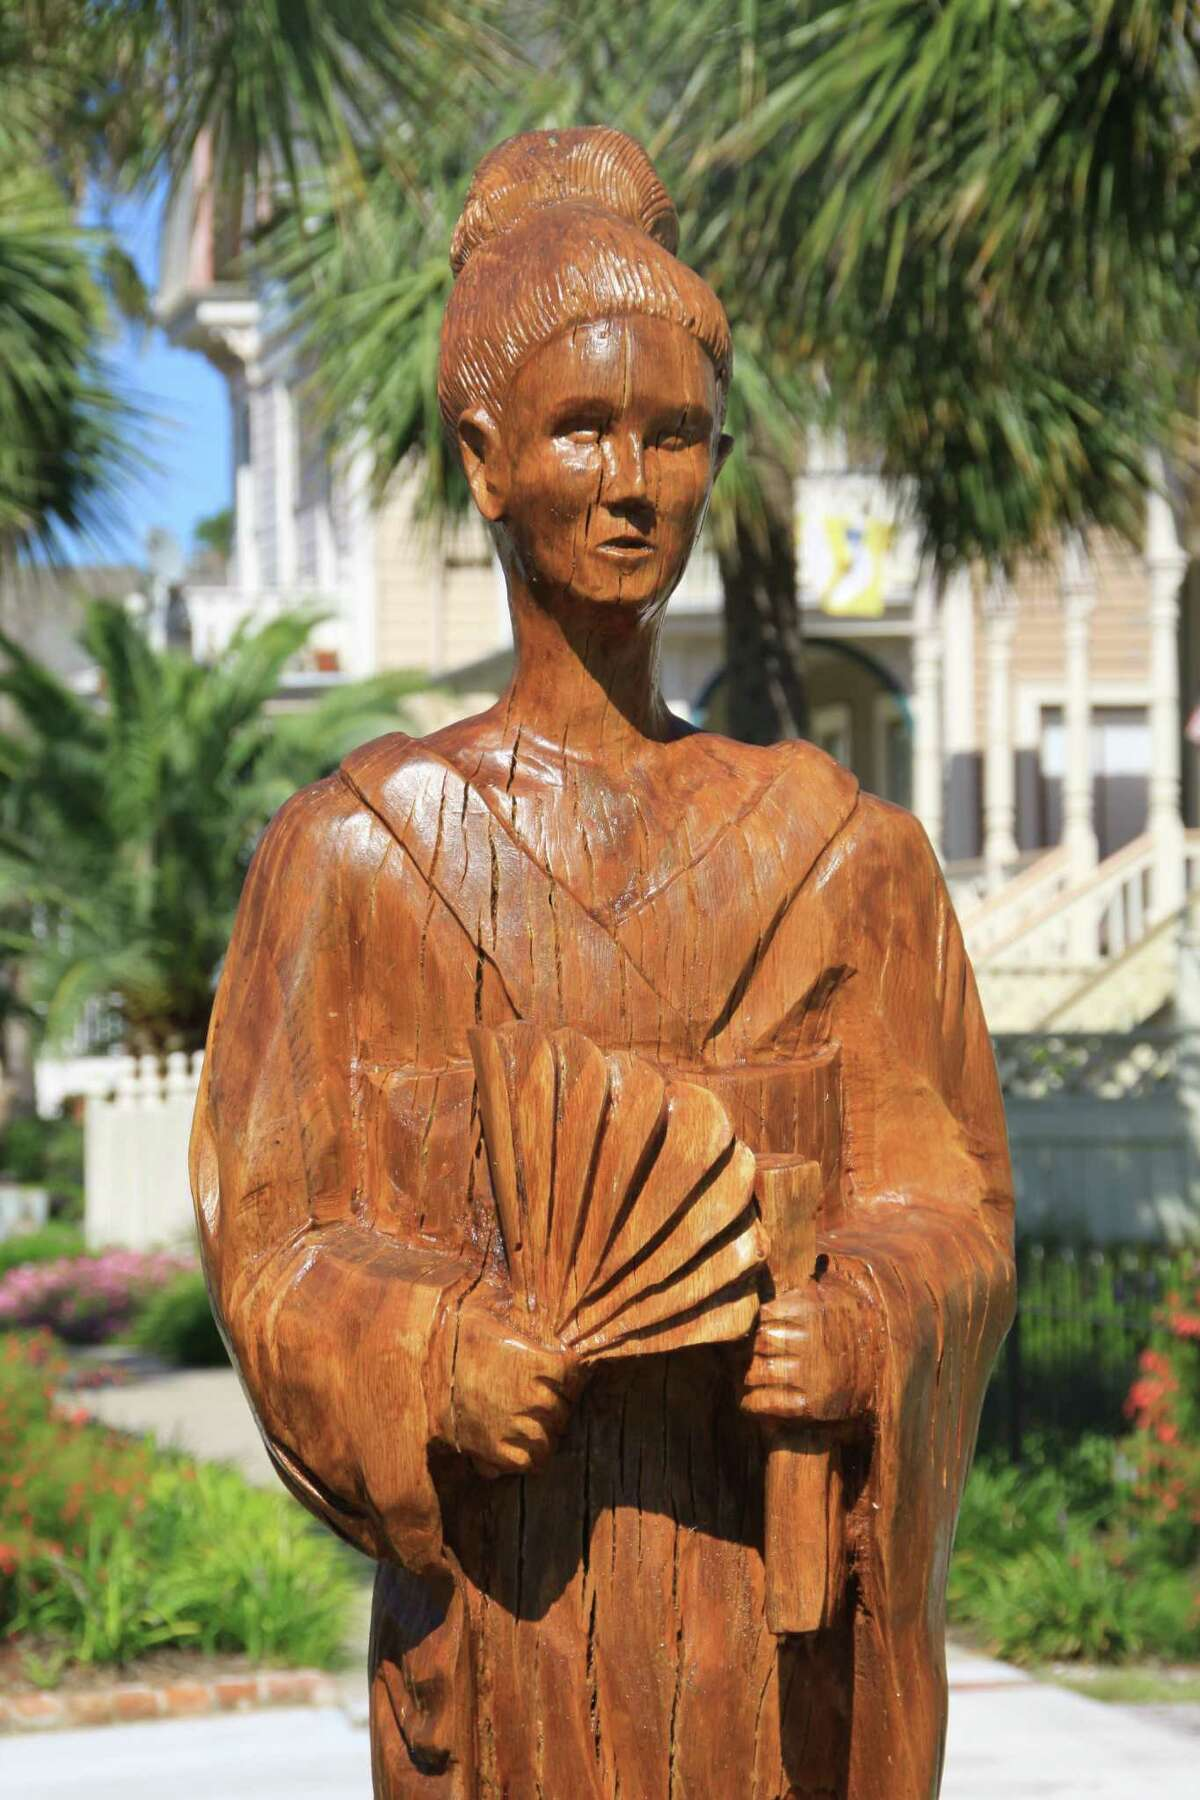 A sculpture of a geisha was created from a tree destroyed in 2008 by Hurricane Ike in Galveston.